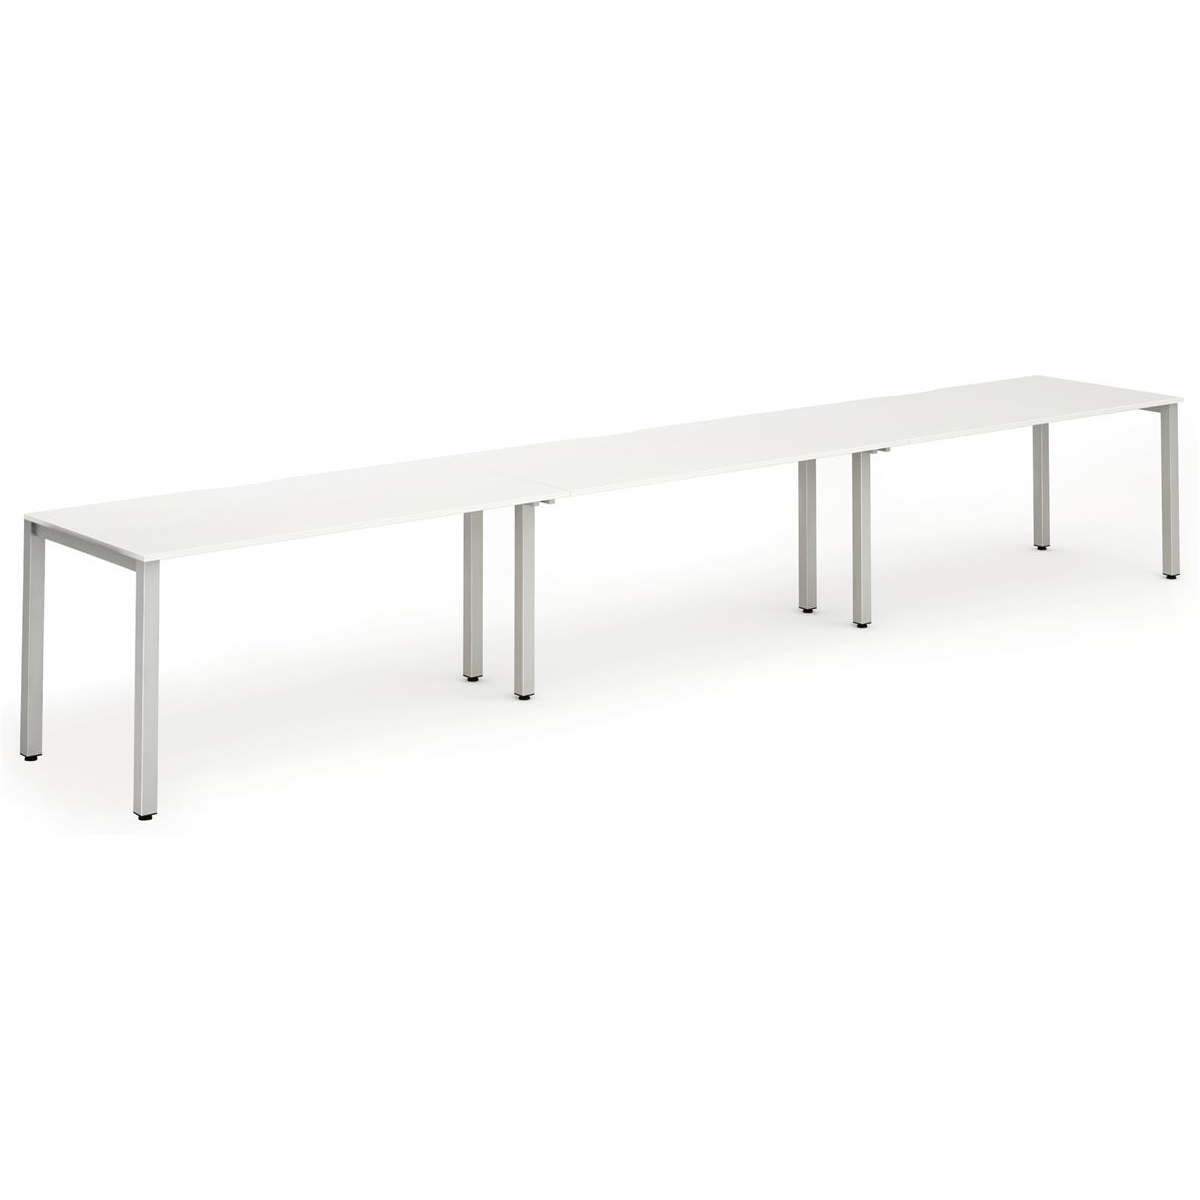 Trexus Bench Desk 3 Person Side to Side Configuration Silver Leg 4800x800mm White Ref BE410